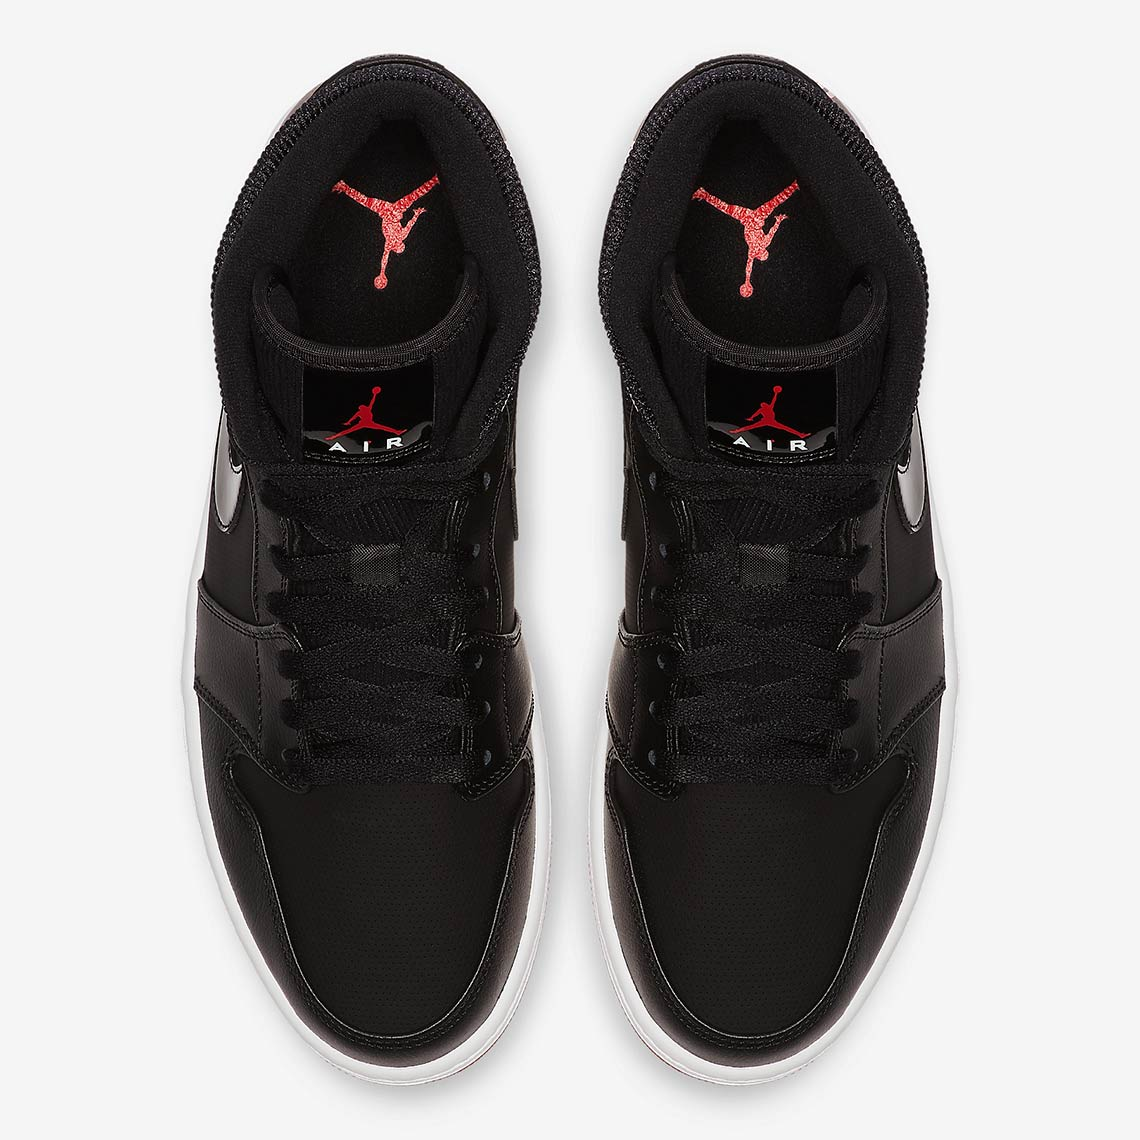 Air Jordan 1 Mid Bred - Buying Guide + Store Links  da1af0f2a